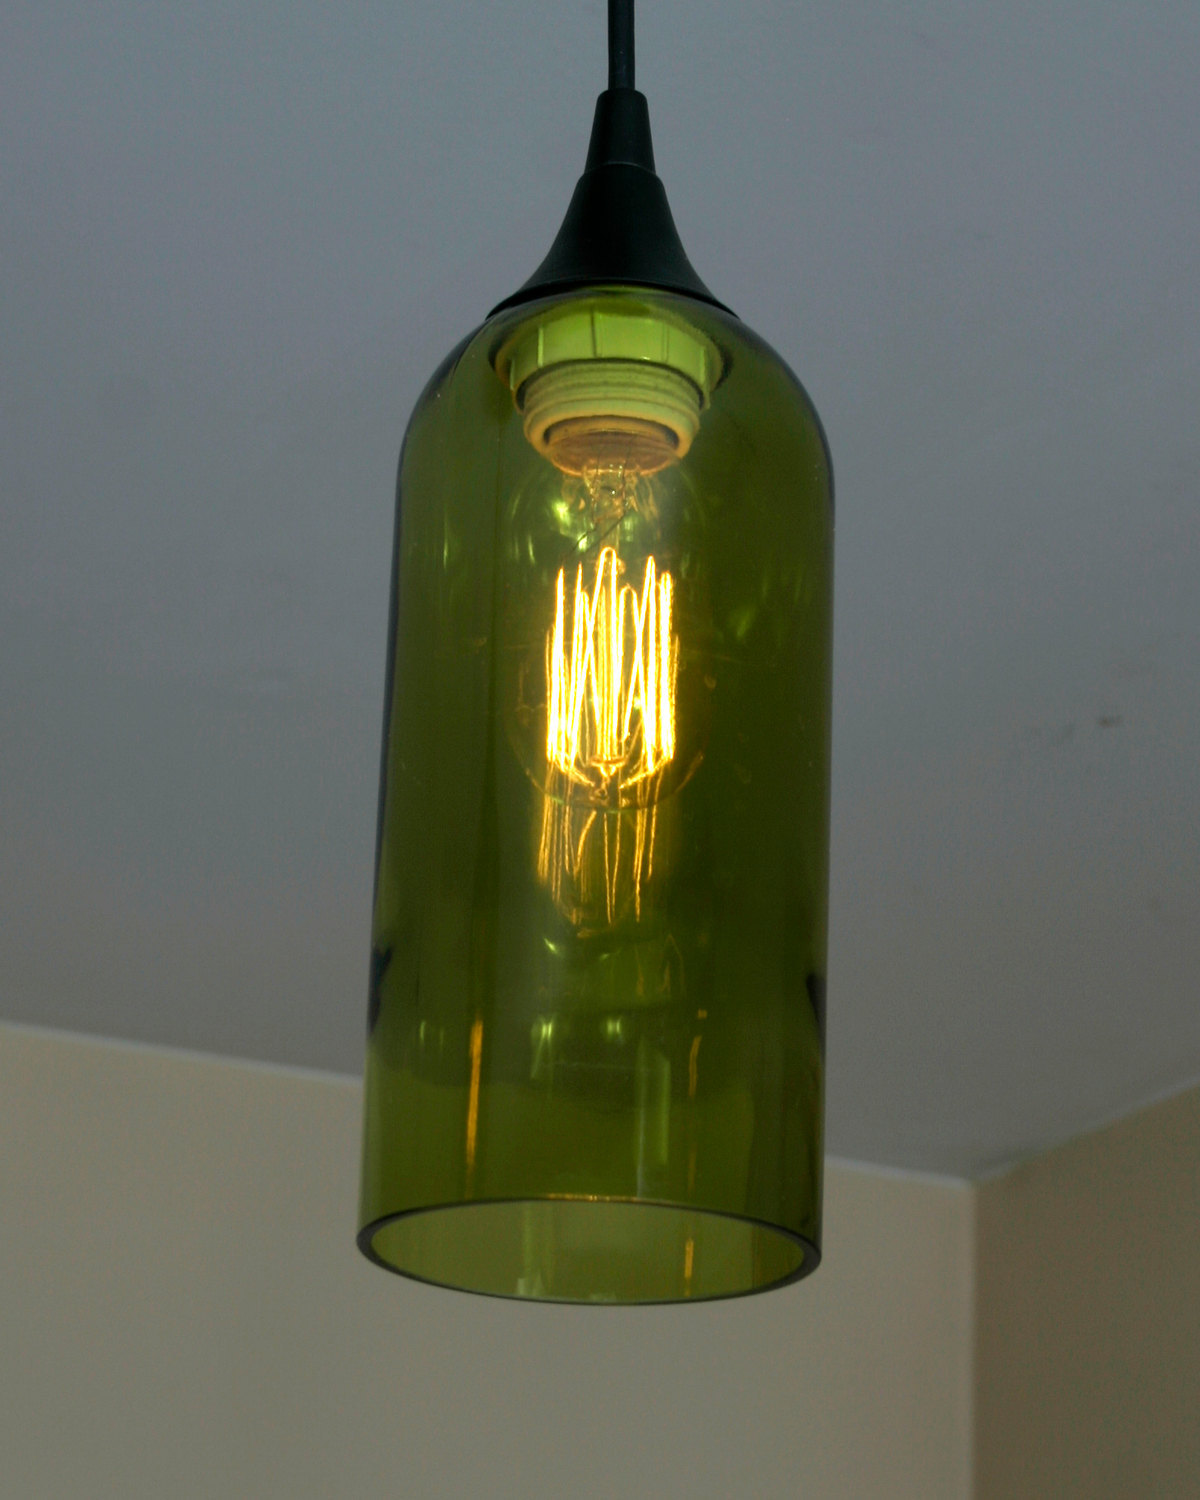 Chardonnay wine bottle 3 pendant light chandeliers ceiling fixtures - Wine bottle pendant light ...